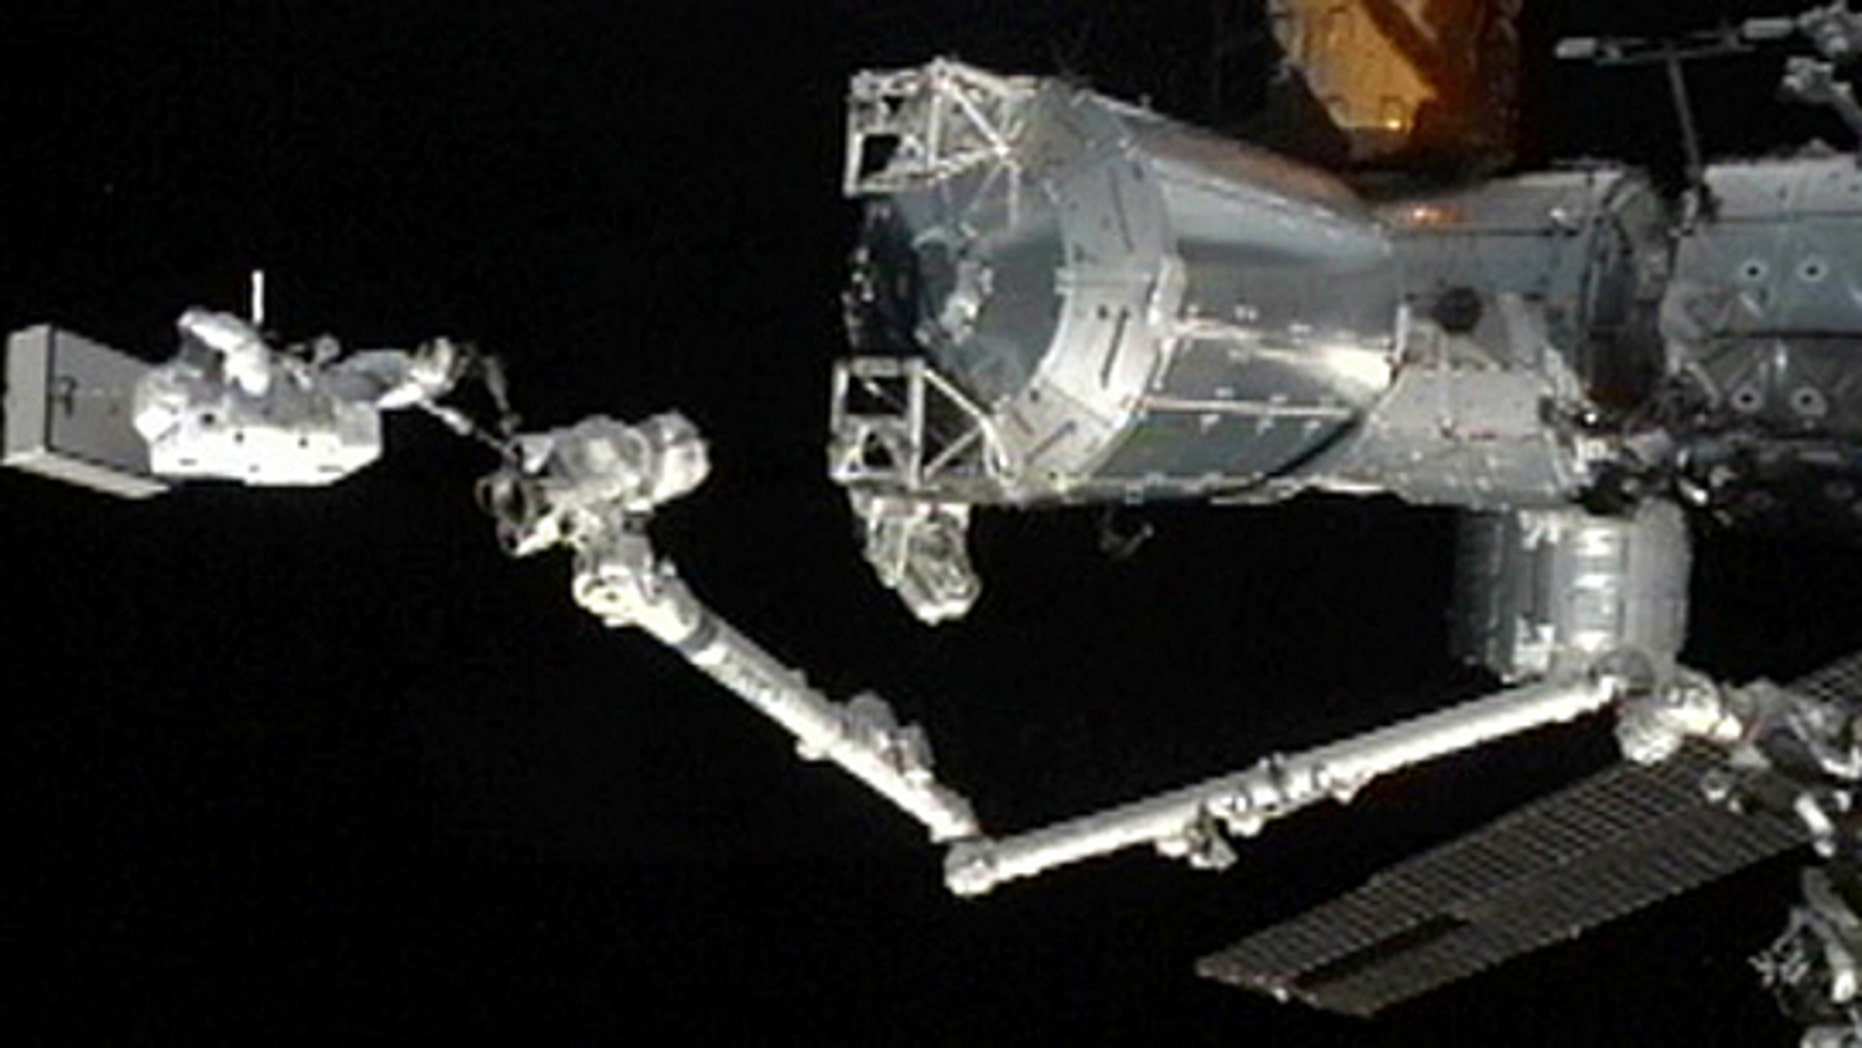 Japanese astronaut Akihiko Hoshides stands a the tip of the International Space Station's robotic arm during an Aug. 30, 2012, spacewalk outside the orbiting lab with crewmate Sunita Williams of NASA.